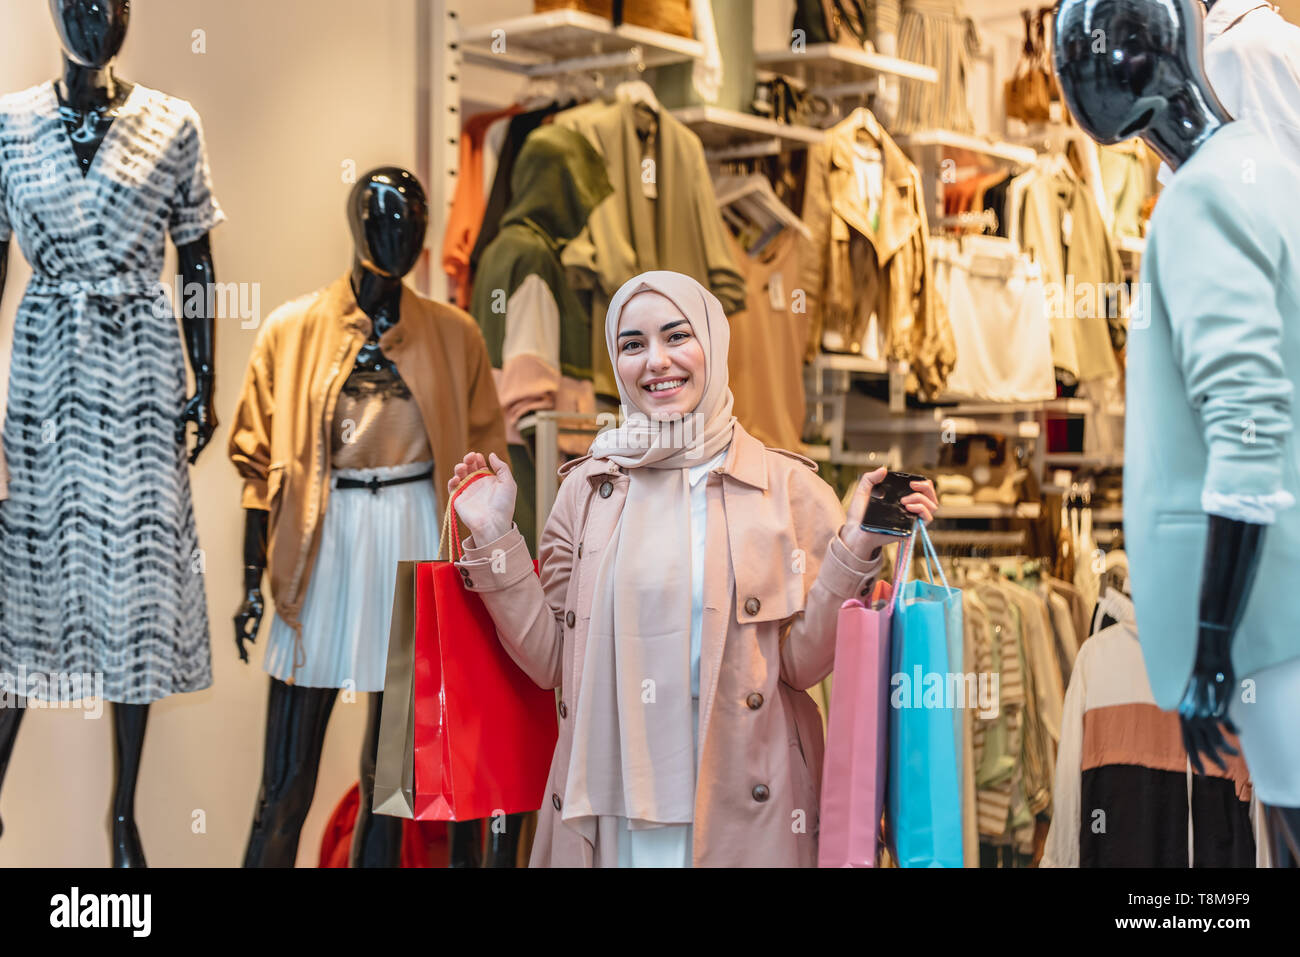 Muslim Clothes Store High Resolution Stock Photography and Images